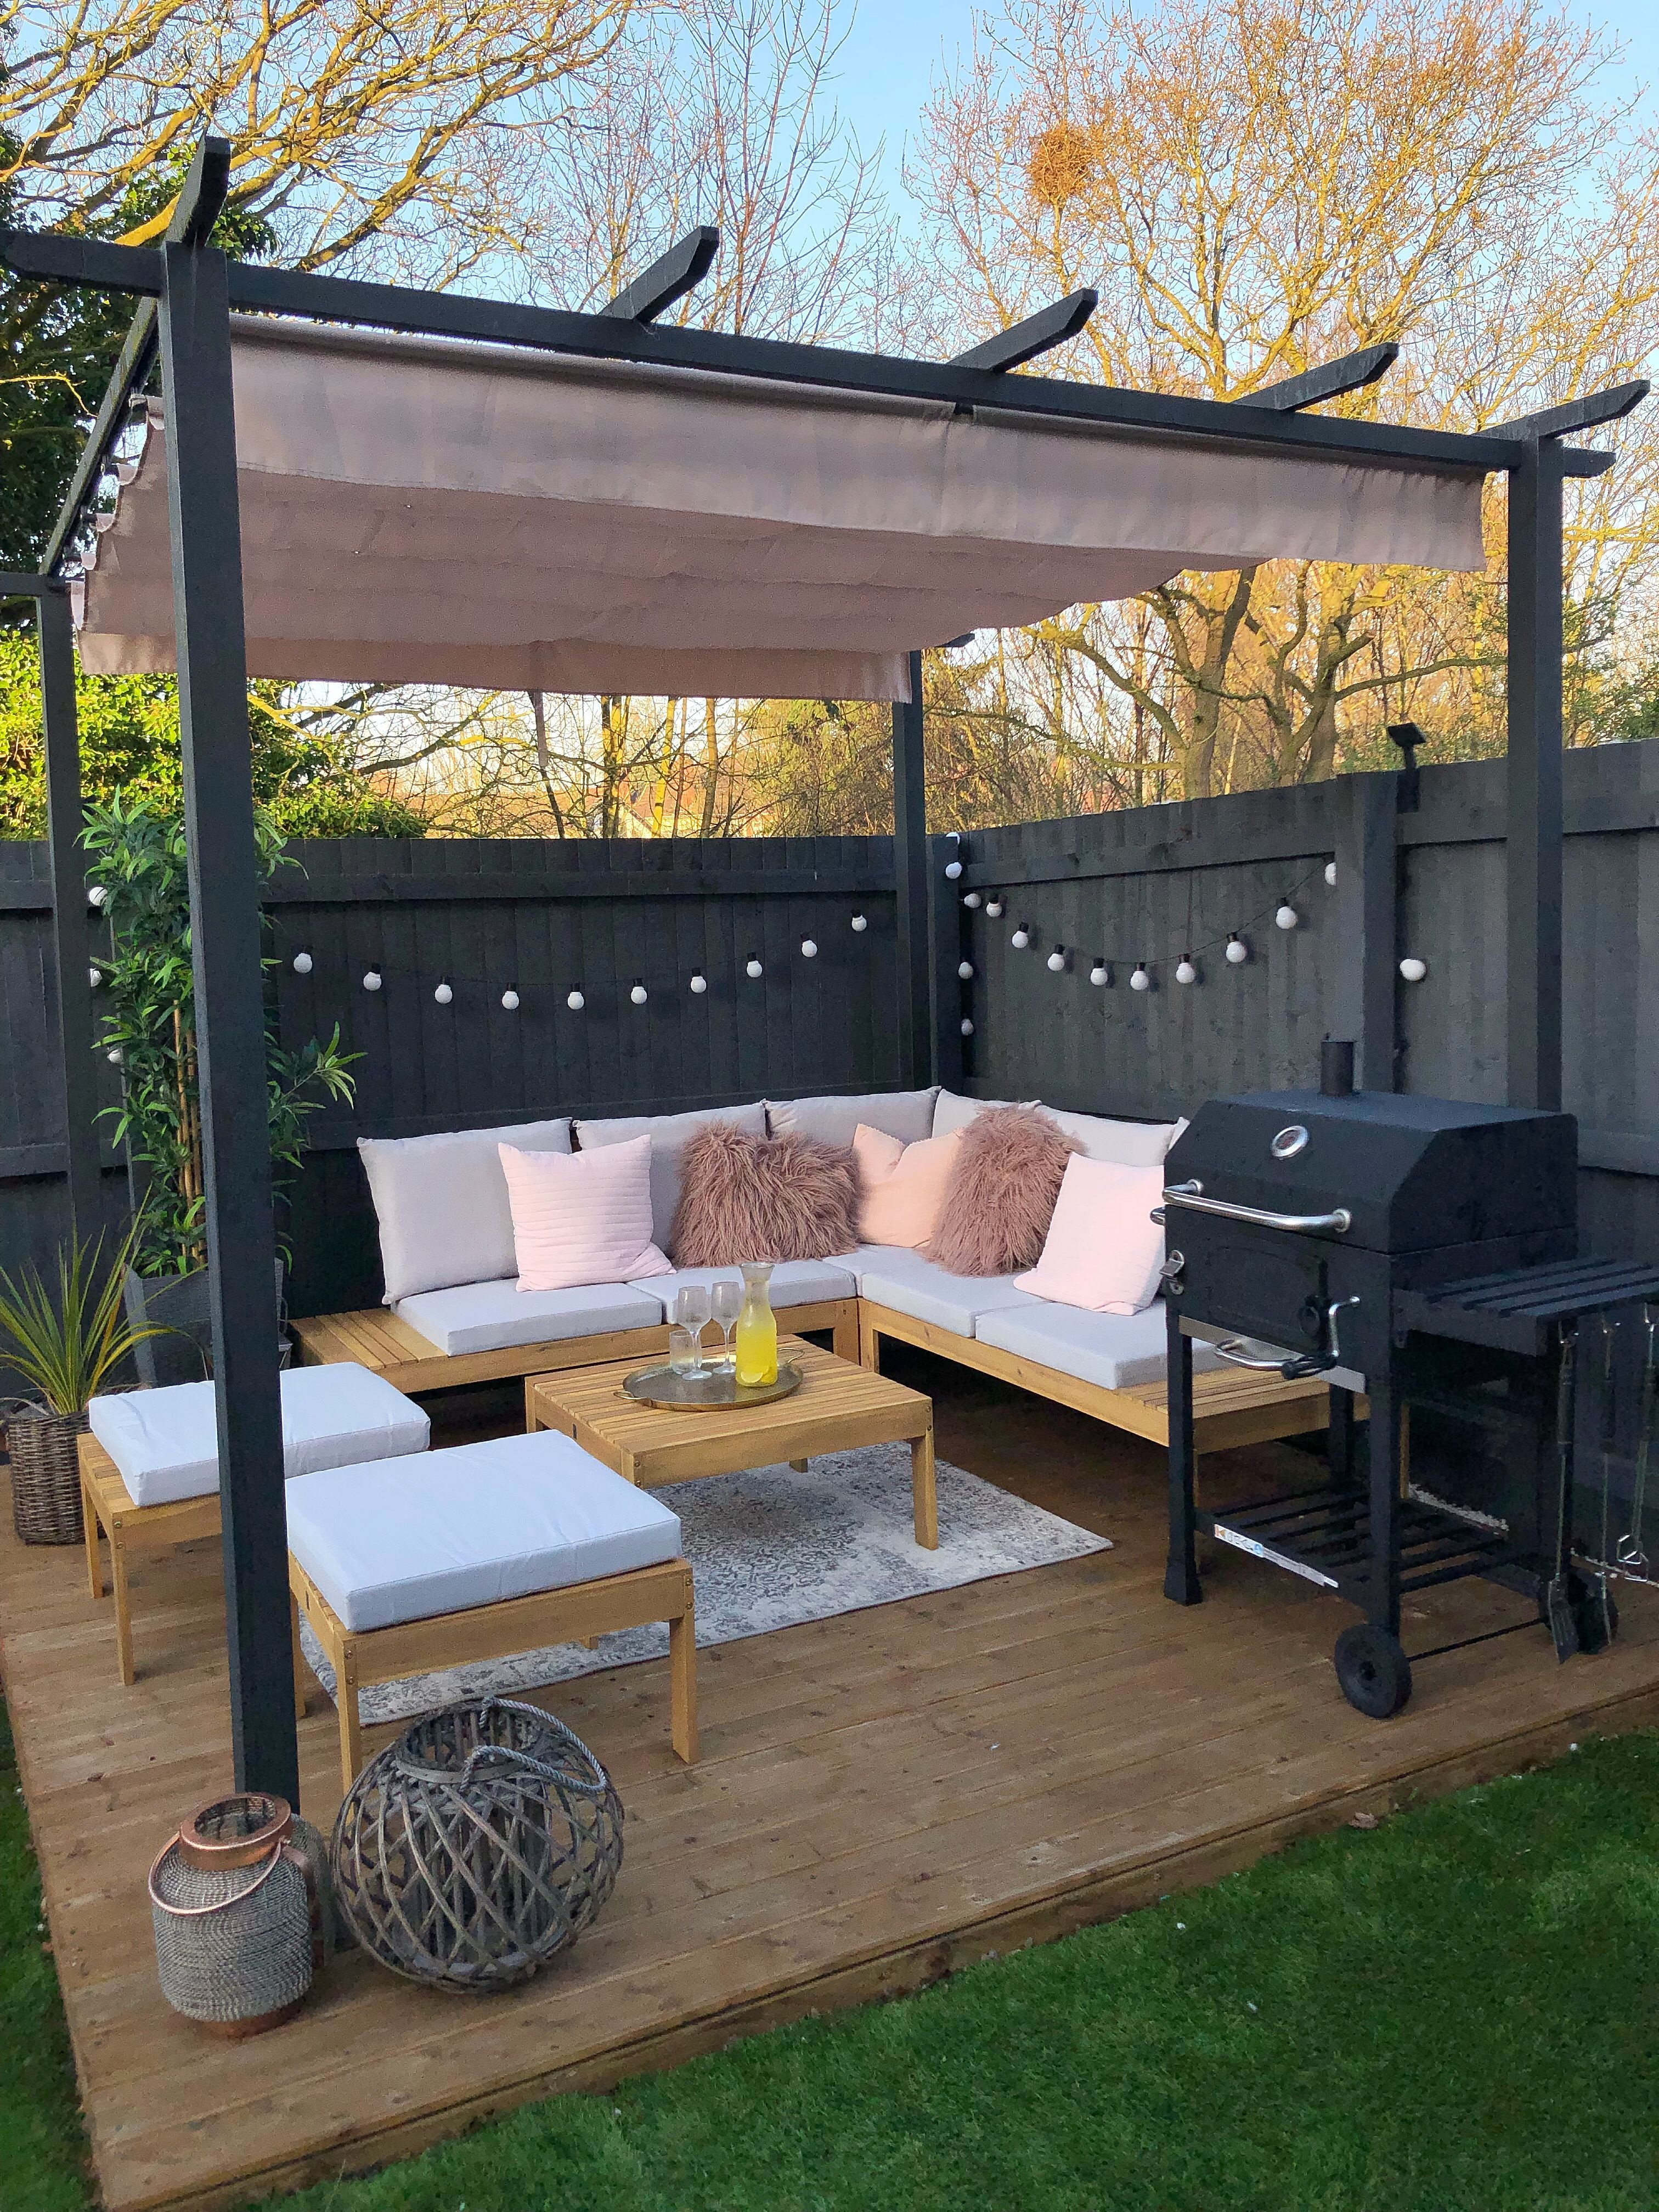 Decking With Outdoor Seating Area Corner Sofa Pergola And Bbq By Luckyplot13 Backyard Seating Area Garden Sitting Areas Backyard Seating